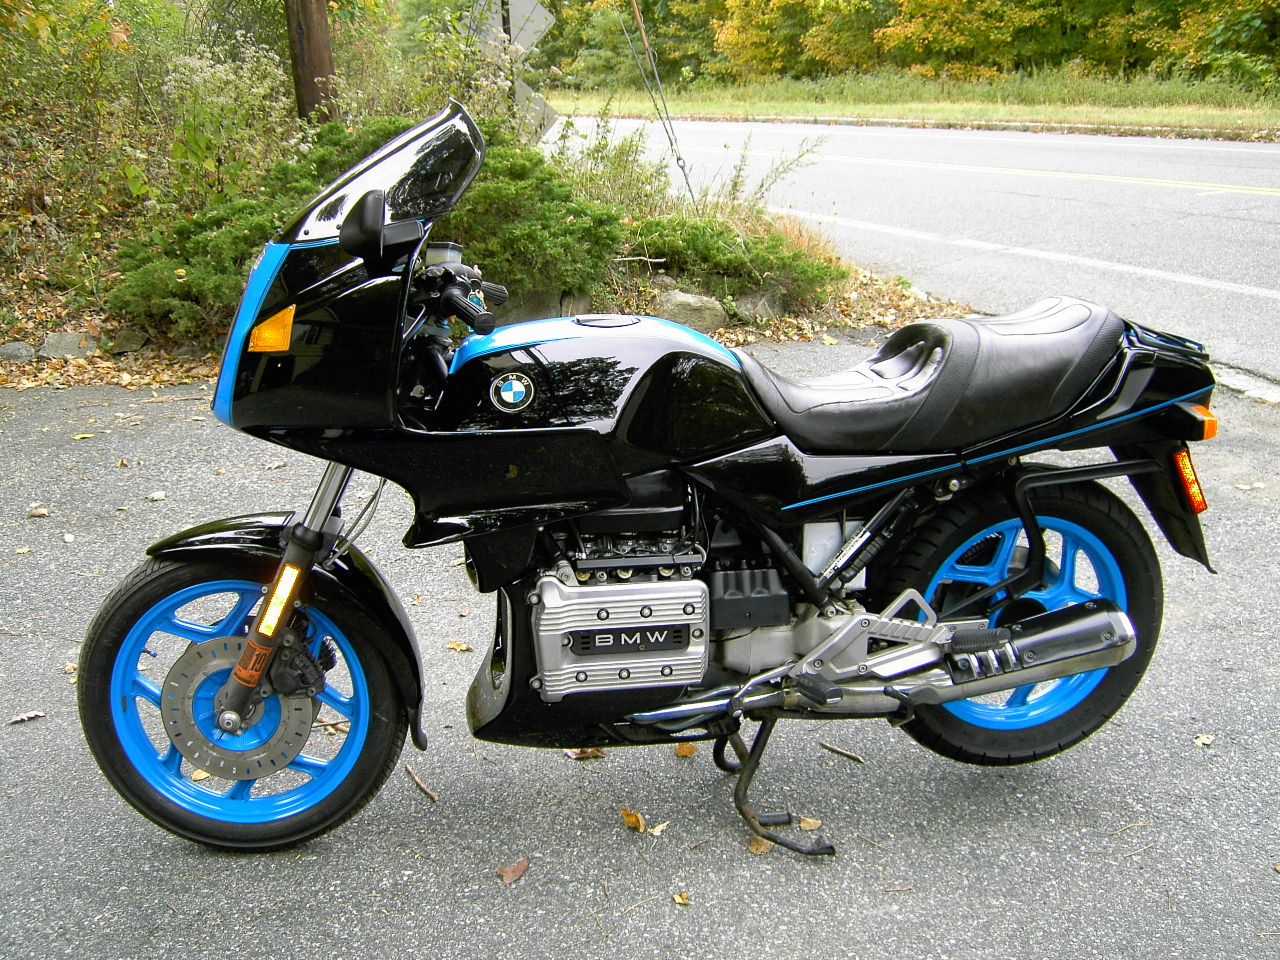 k bike 1990 bmw k100rs we sell quality used k bike parts for your bmw motorcycle all of our used bmw motorcycle parts carry a money back guarantee so there is no risk